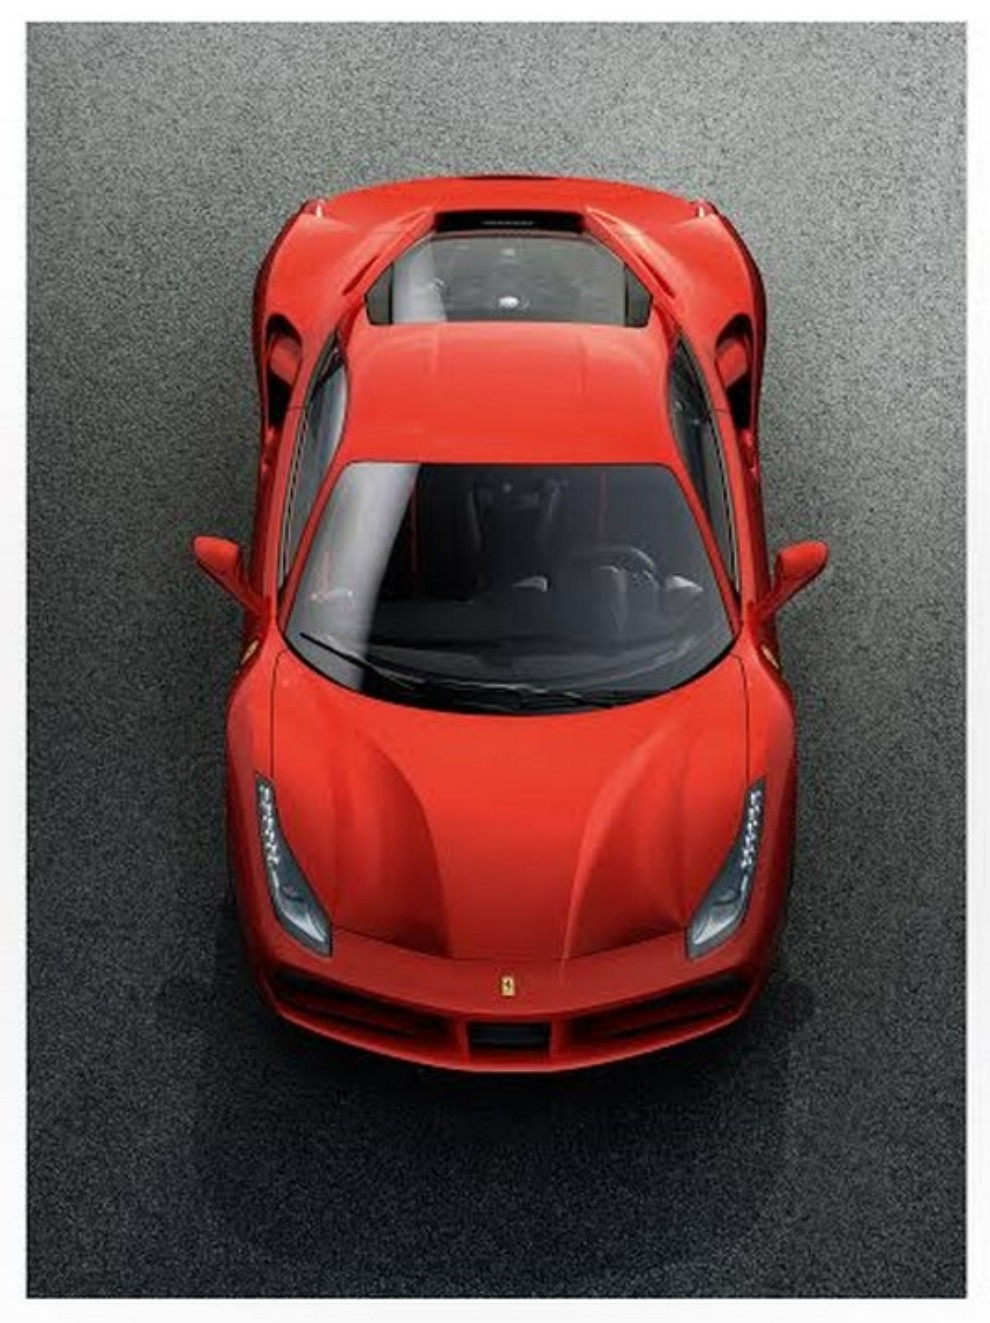 Motore Ferrari V8 per la 4° volta International Engine & Powertrain of the Year - Foto 9 di 10